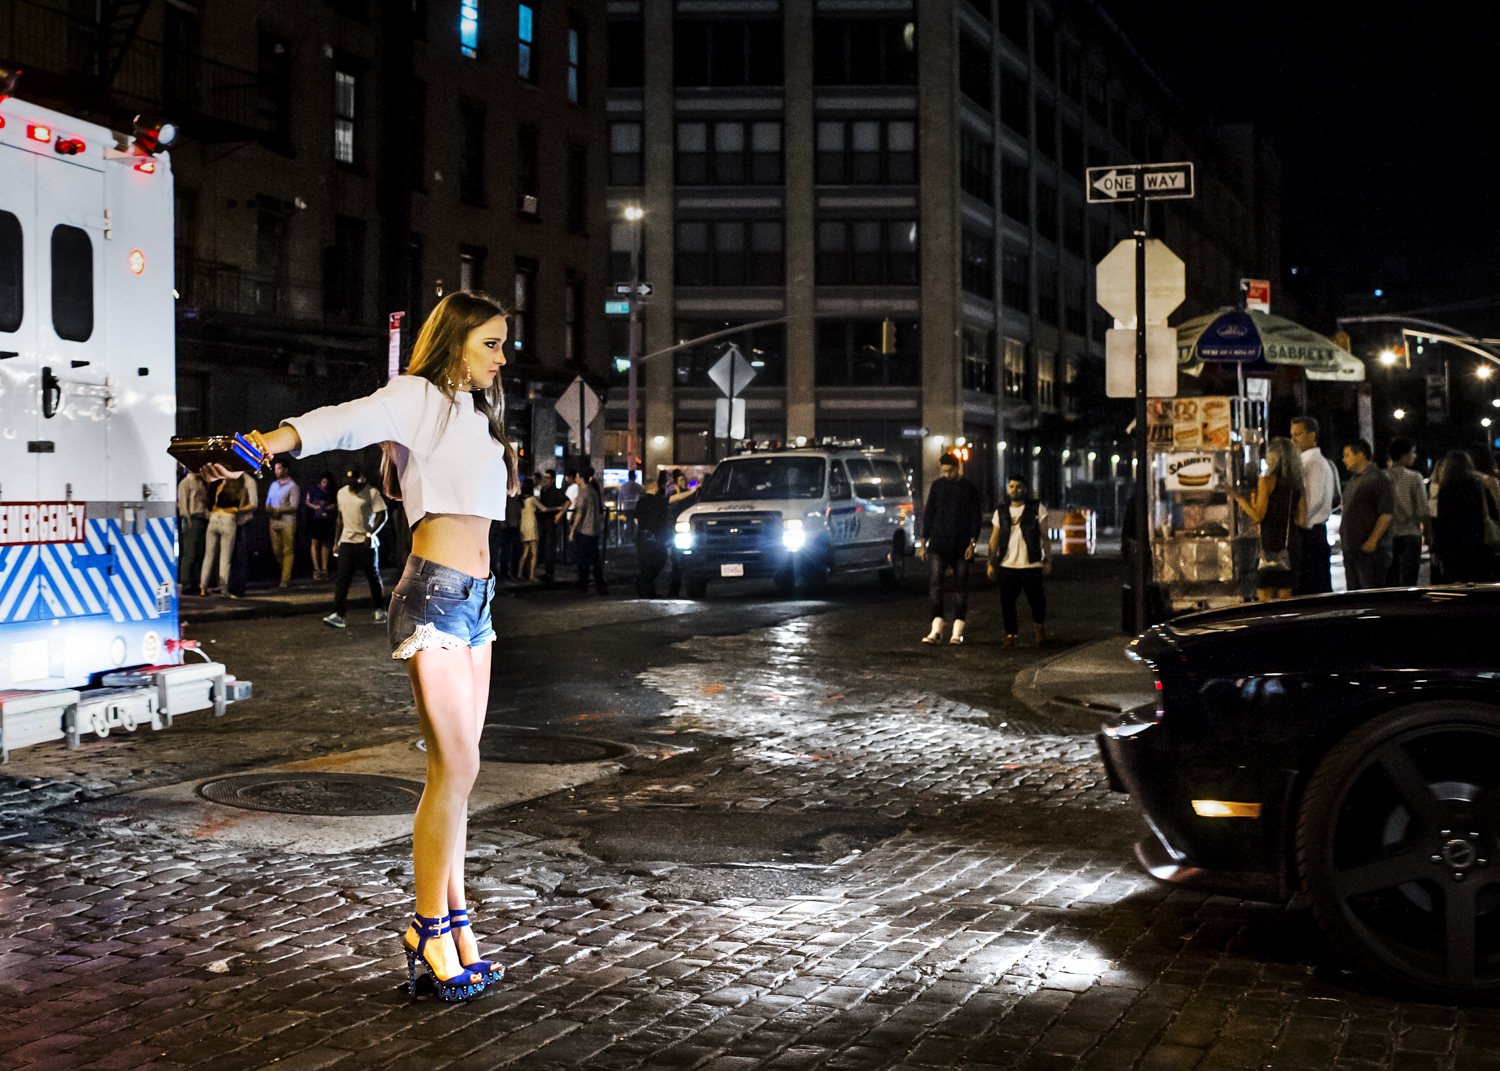 A young woman tries to stop a car at an intersection in the Meatpacking District in June 2014.